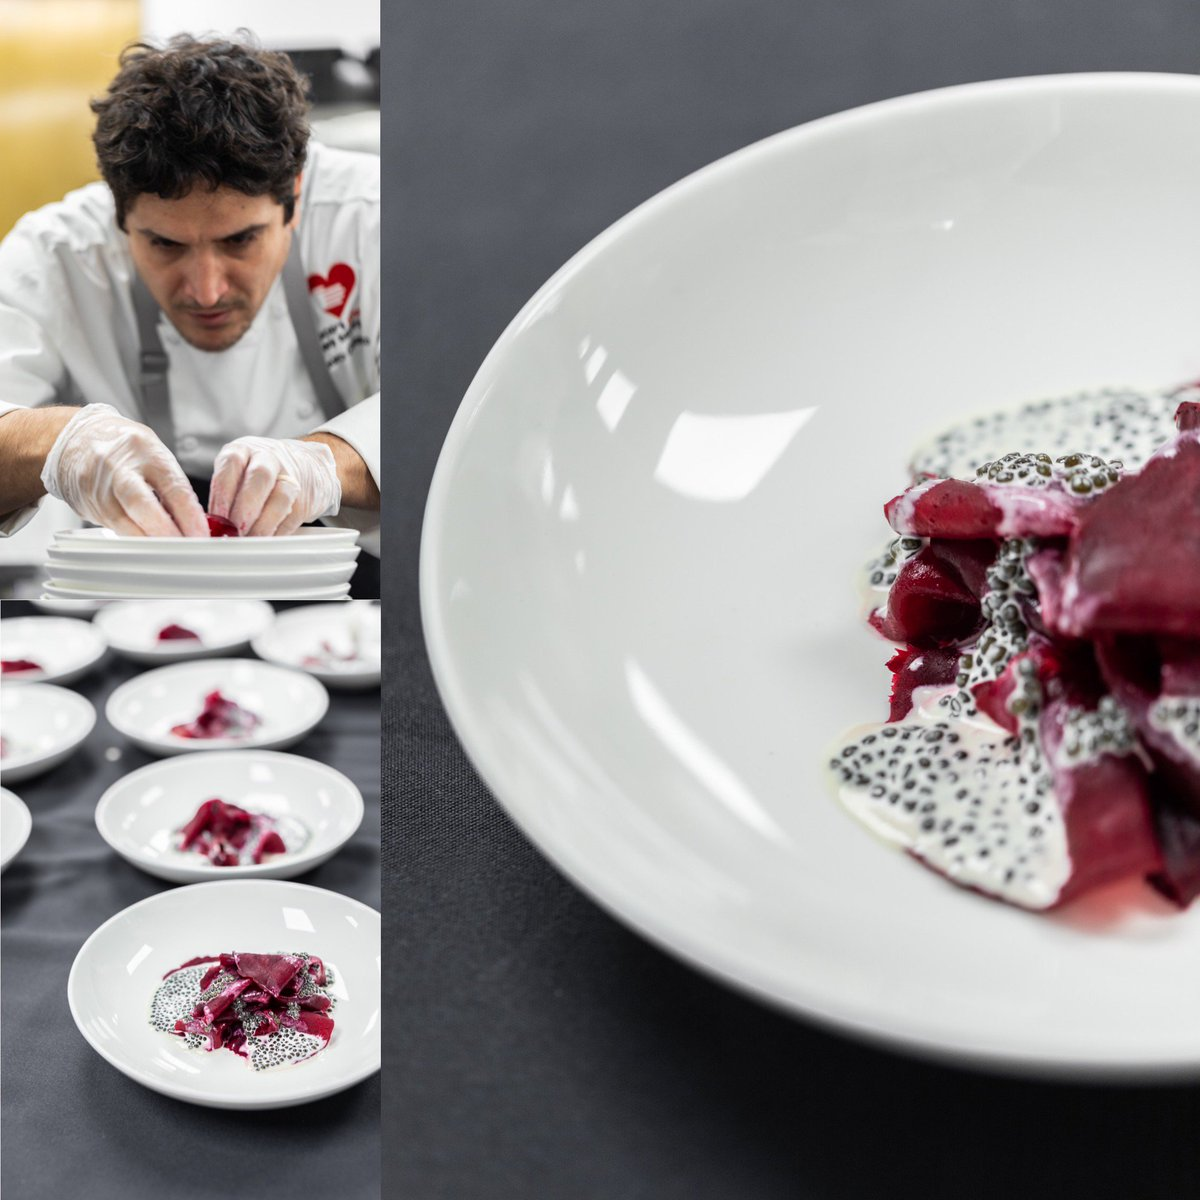 Chef Mauro Colagreco of Mirazur restaurant. Photo courtesy: Twitter/@maurocolagreco